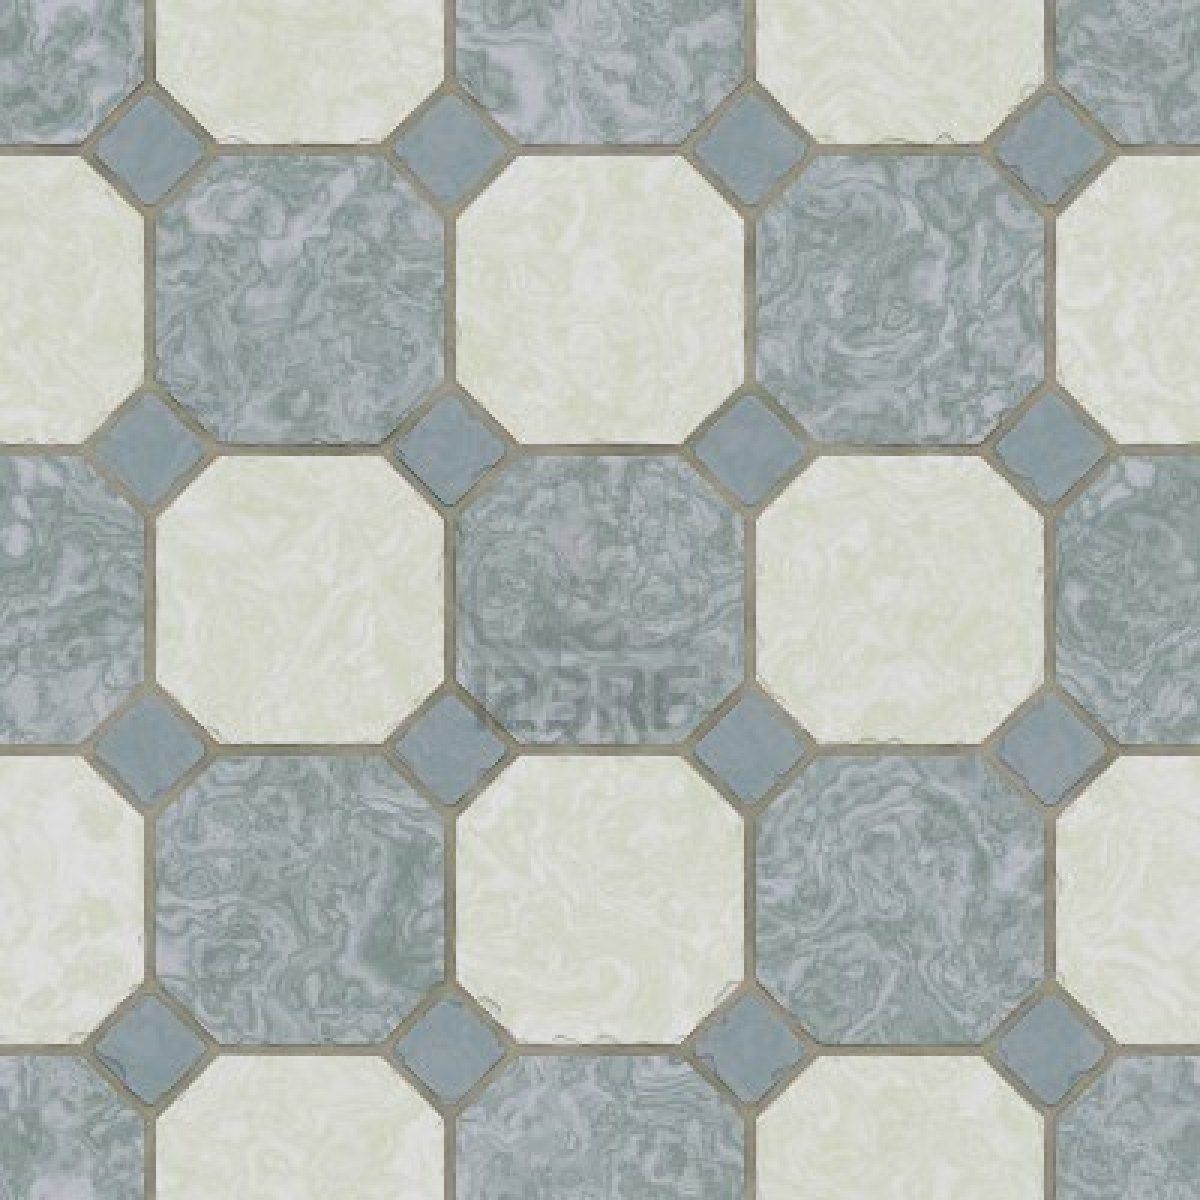 seamless kitchen flooring american standard faucet ceramic tile floor texture scrapbooking stock photo